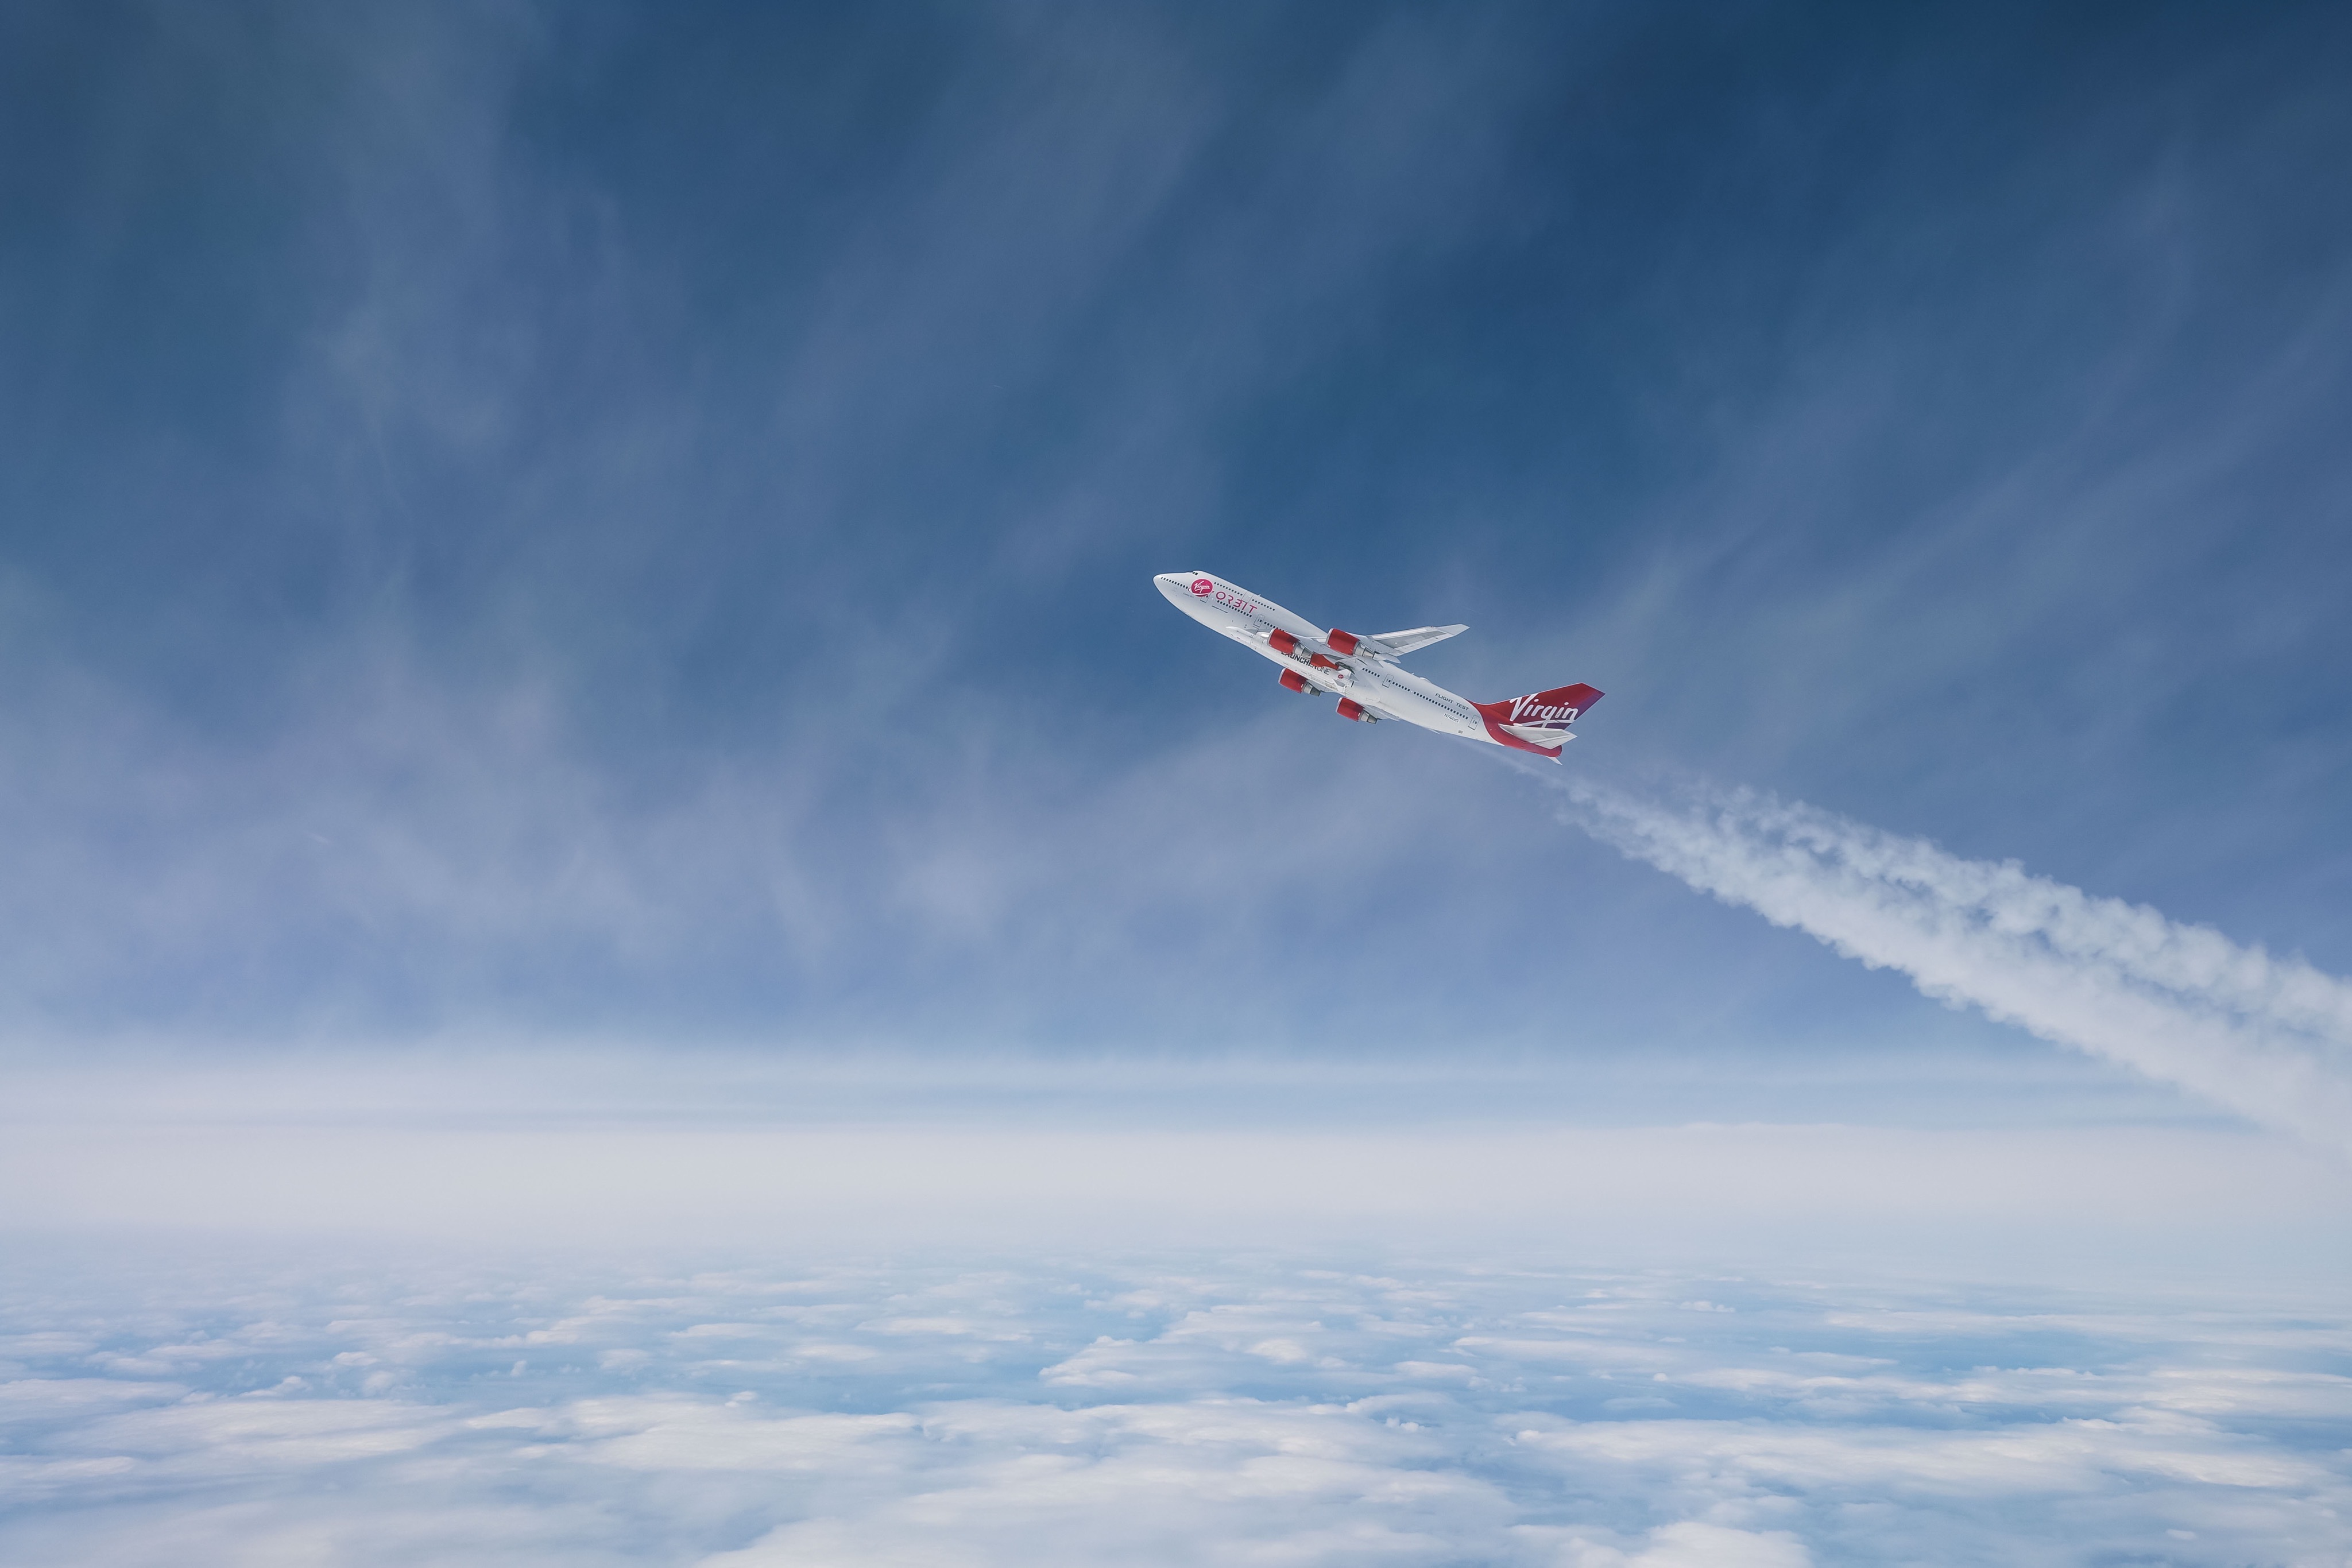 2020-virgin-orbit-last-major-test.jpg